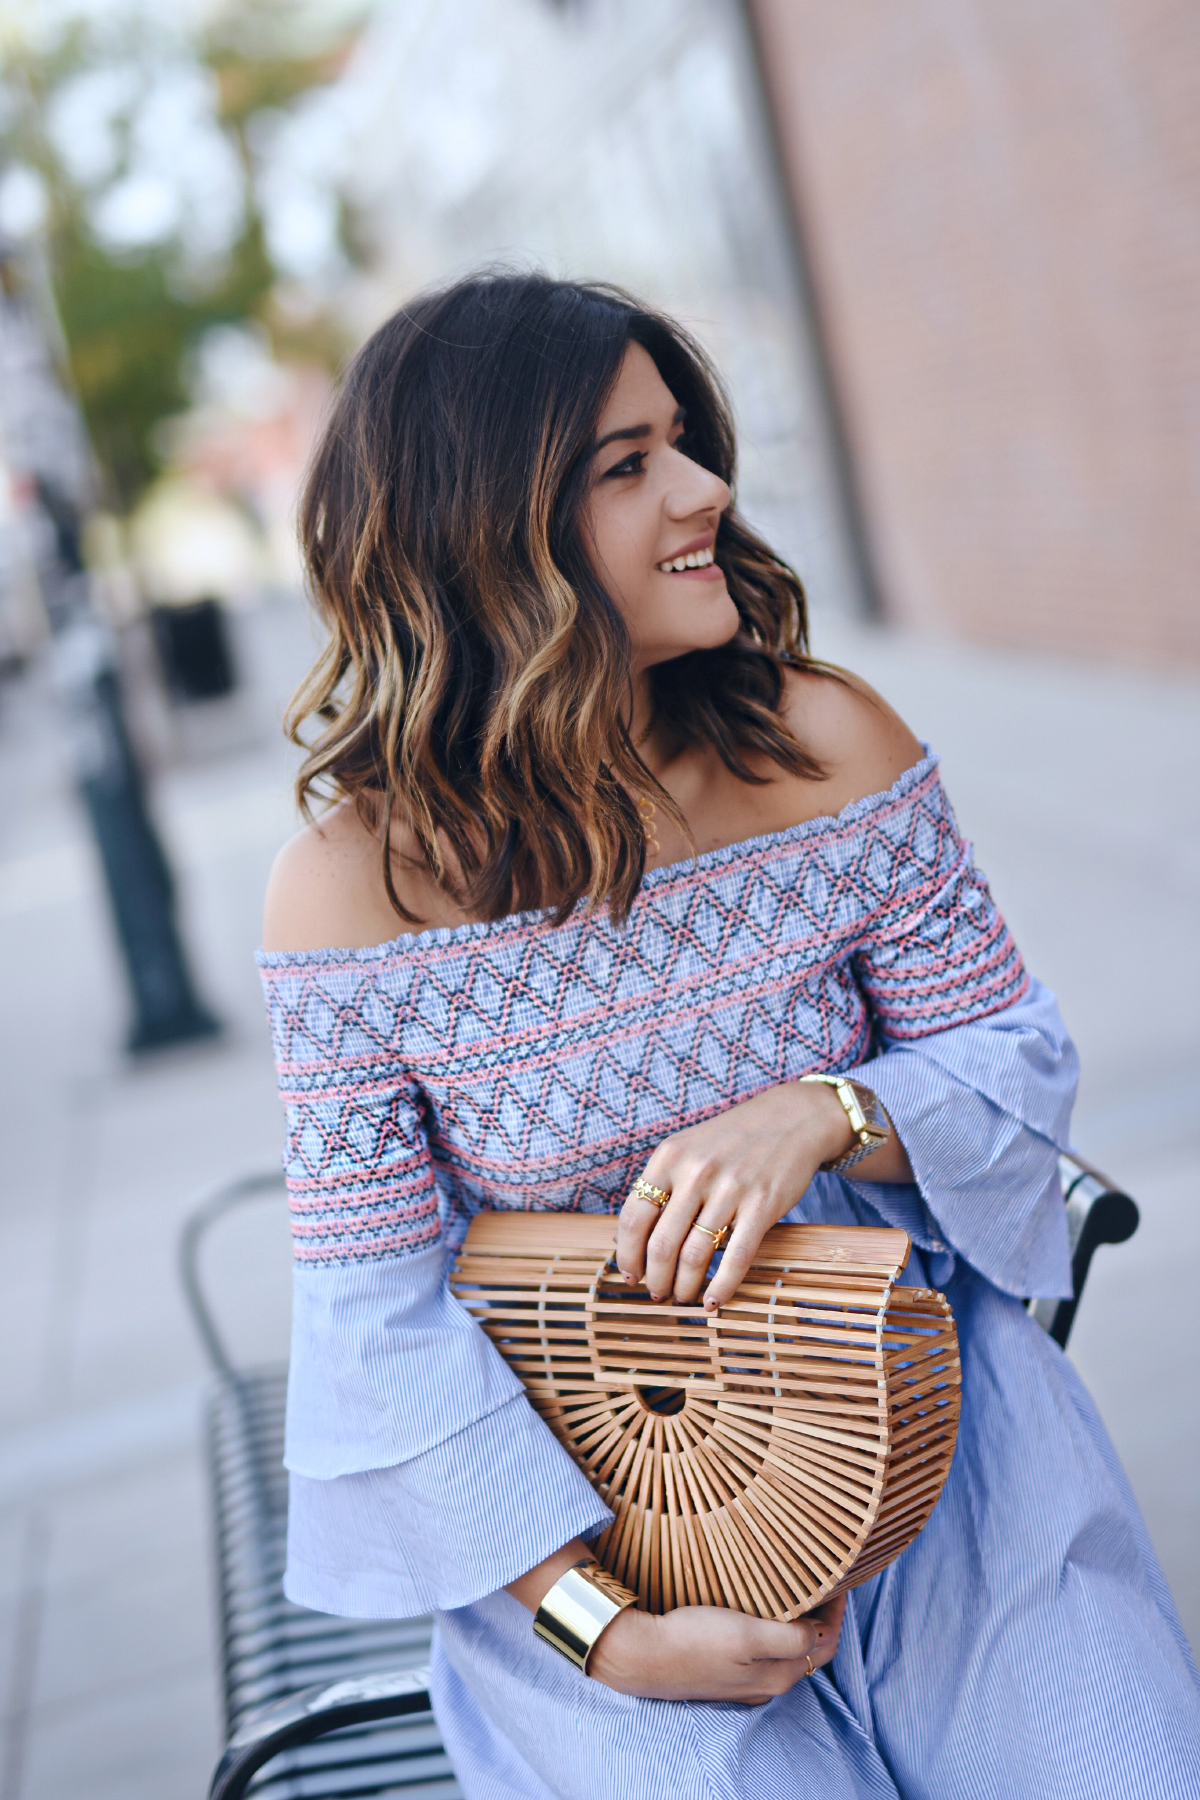 END OF SUMMER WISH LIST + NORDSTROM GIFT CARD GIVEAWAY